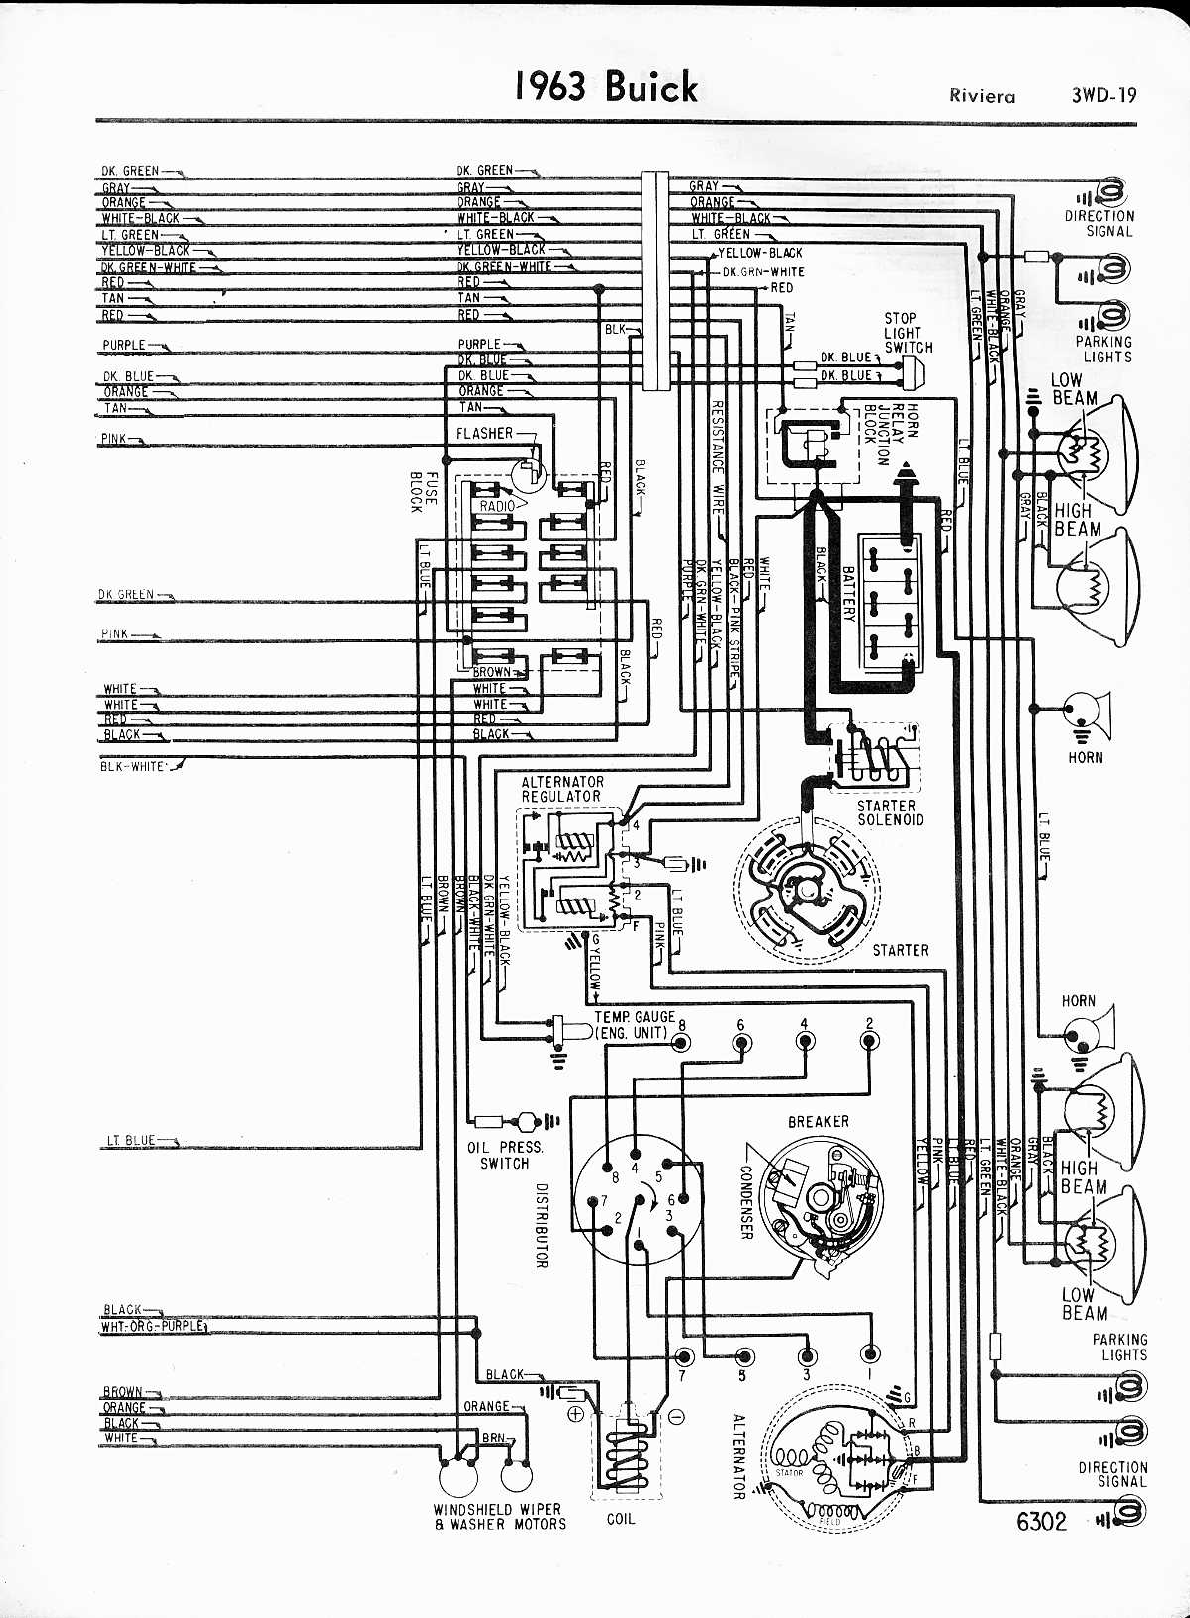 1965 Riviera Wiring Diagram Reinvent Your Yamaha Schematic Buick 1963 Misc Documents Diagrams Pdf Rh Manuals Co 1969 1970